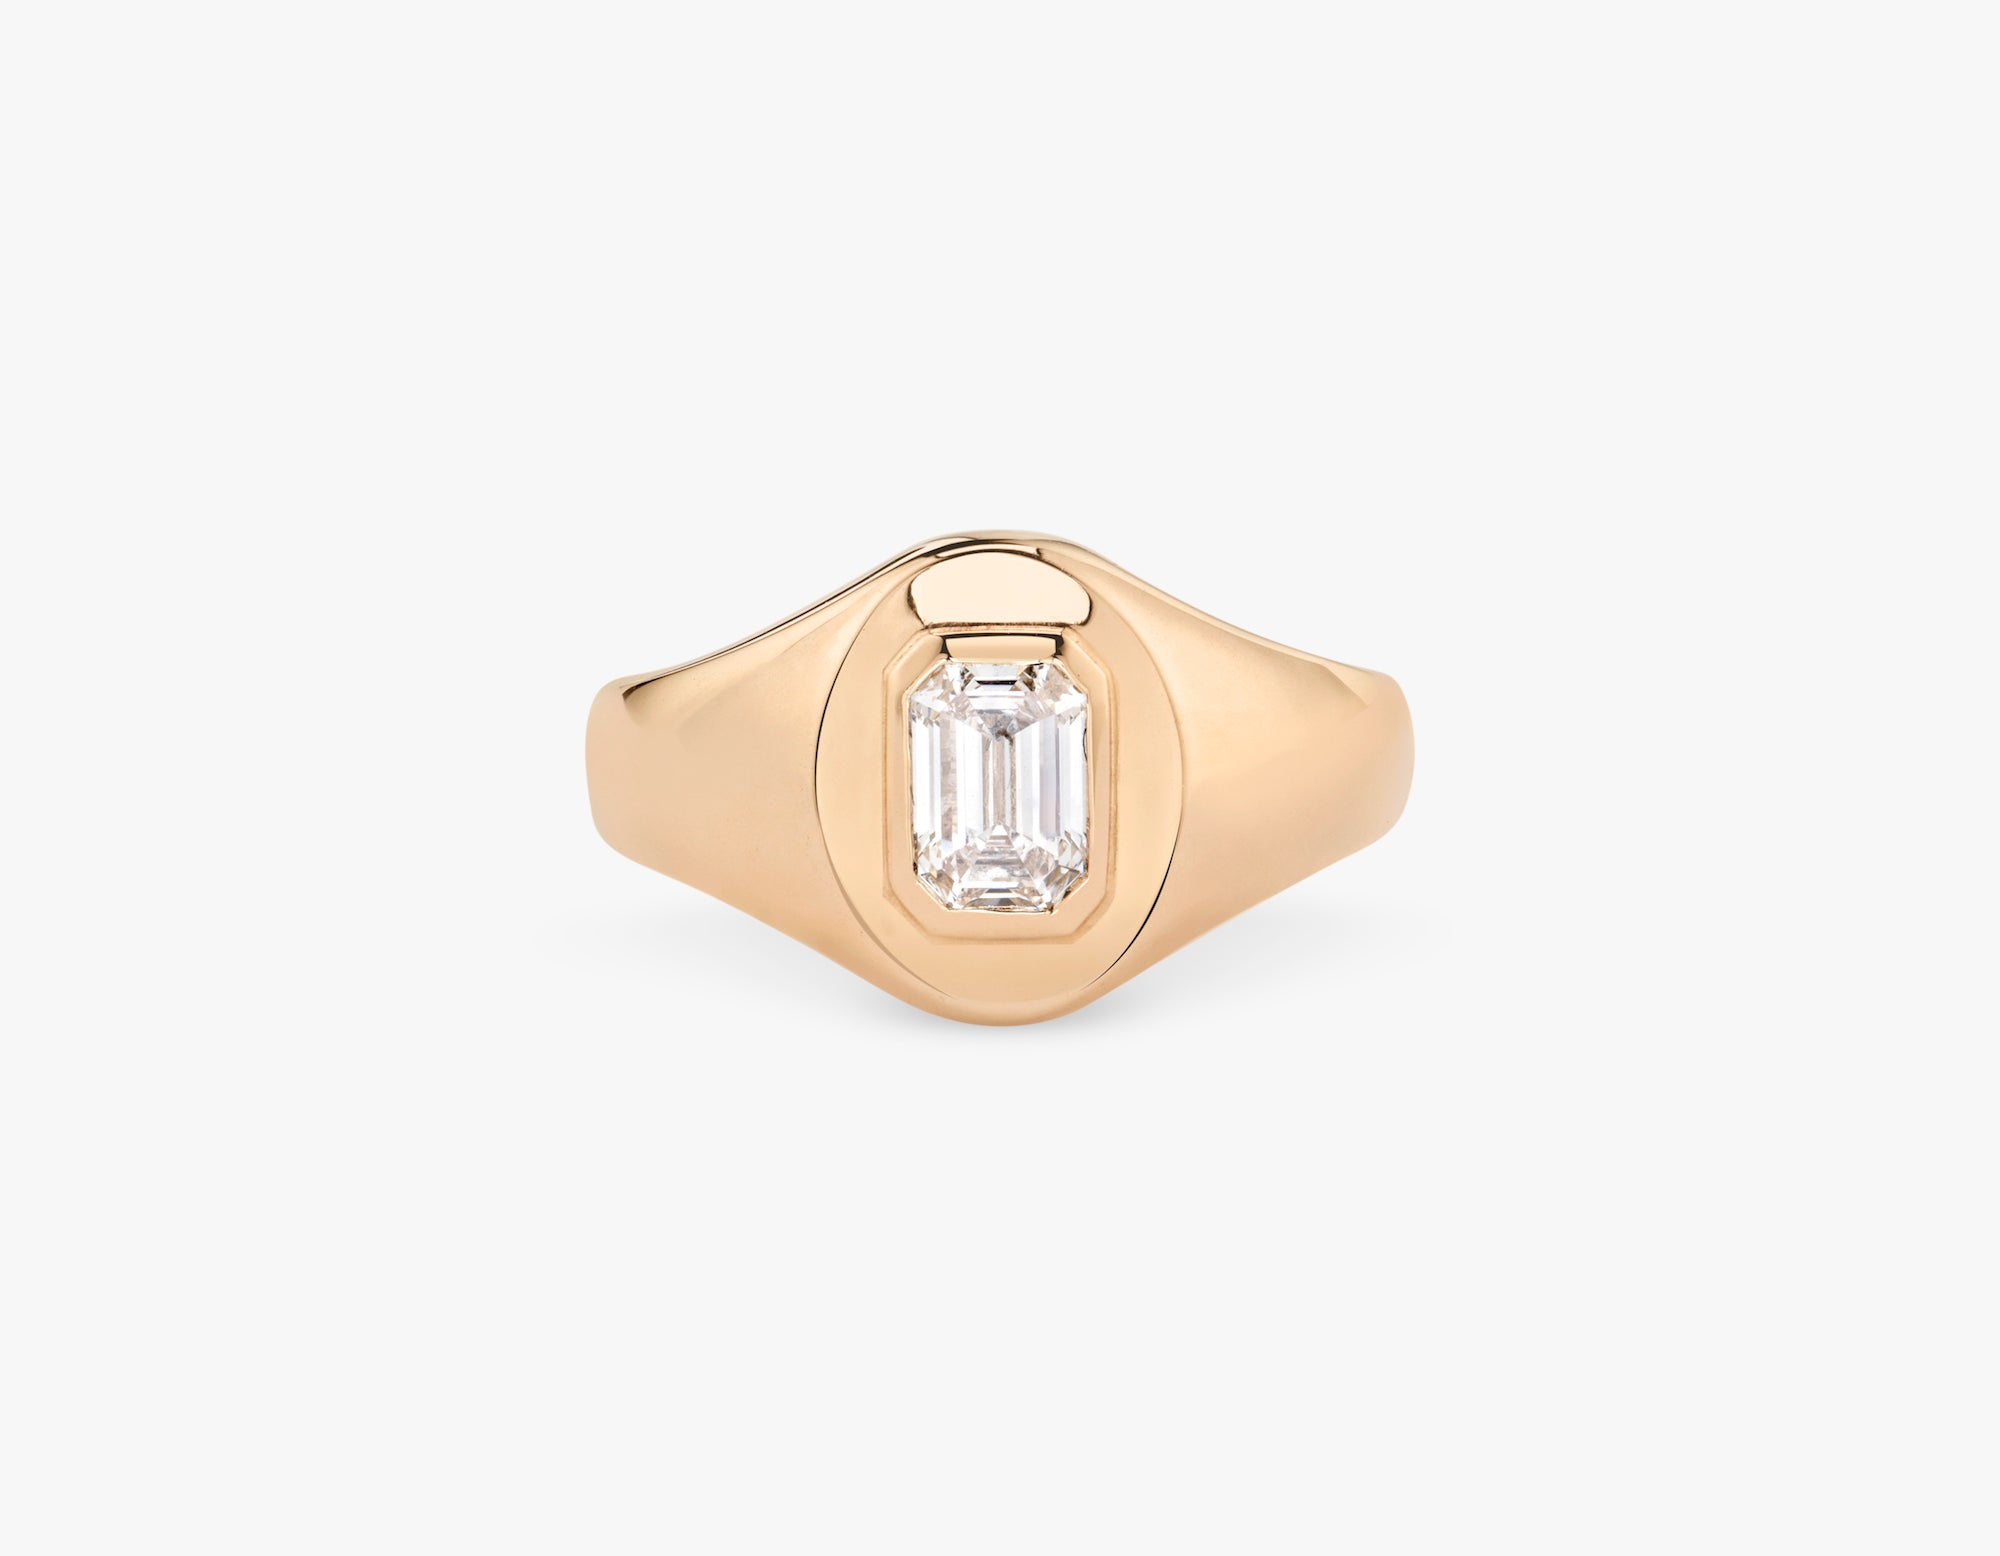 Vrai 14k solid gold classic simple Emerald Diamond Signet Ring, 14K Rose Gold